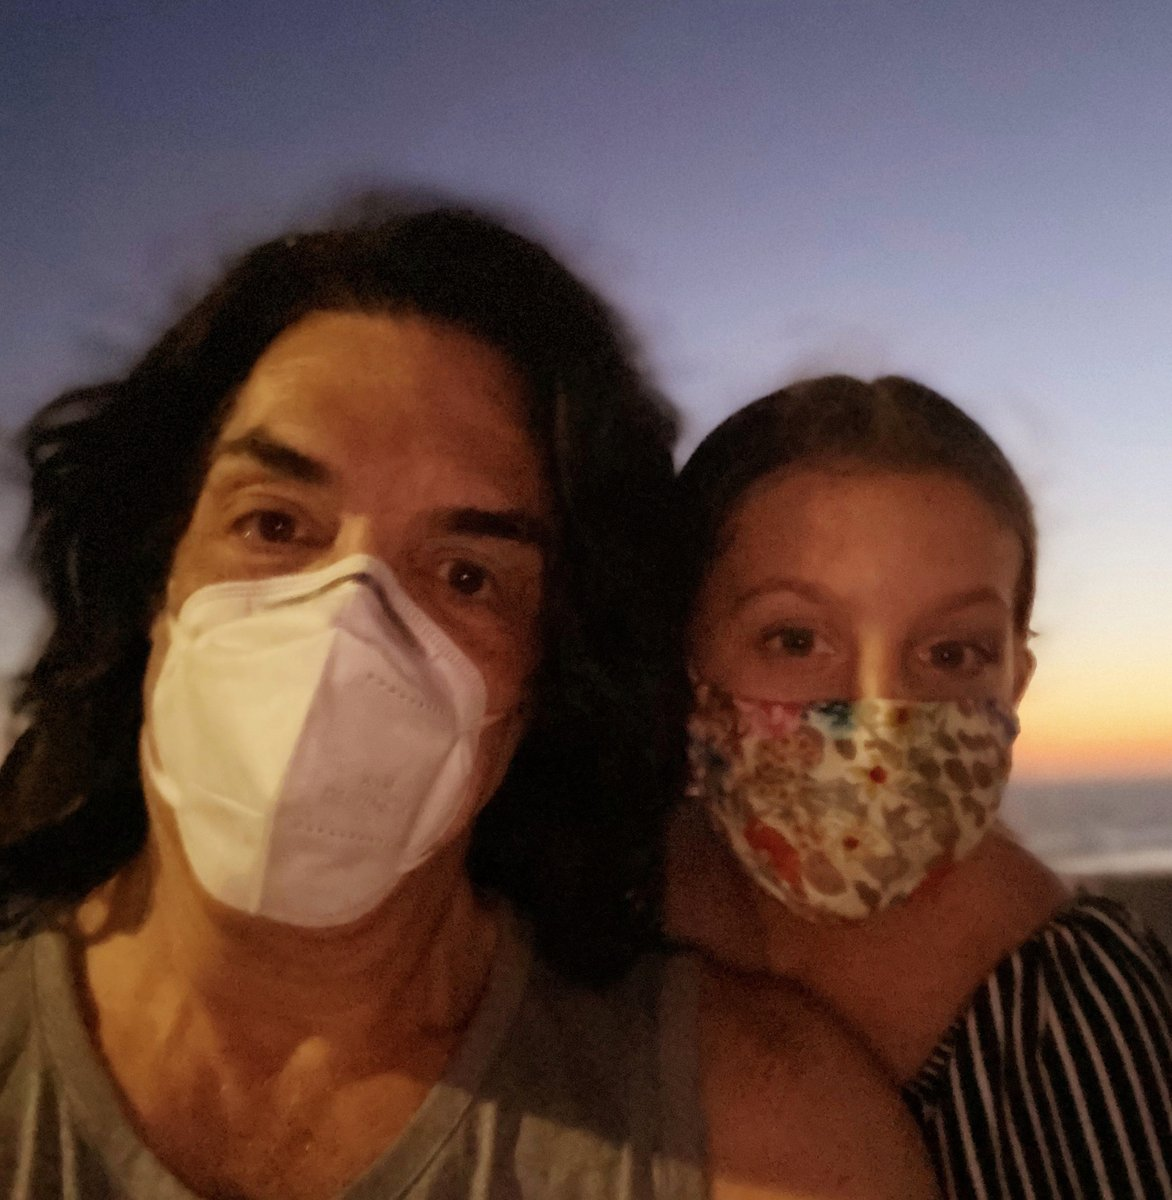 Sunset at the beach with Emily. WEAR YOUR MASK! Dont listen to conspiracy theorists or graduates of The Internet University Of Medicine. While the credible authorities and experts continue to learn more about Covid 19 they remain in agreement about safety protocols. End of story